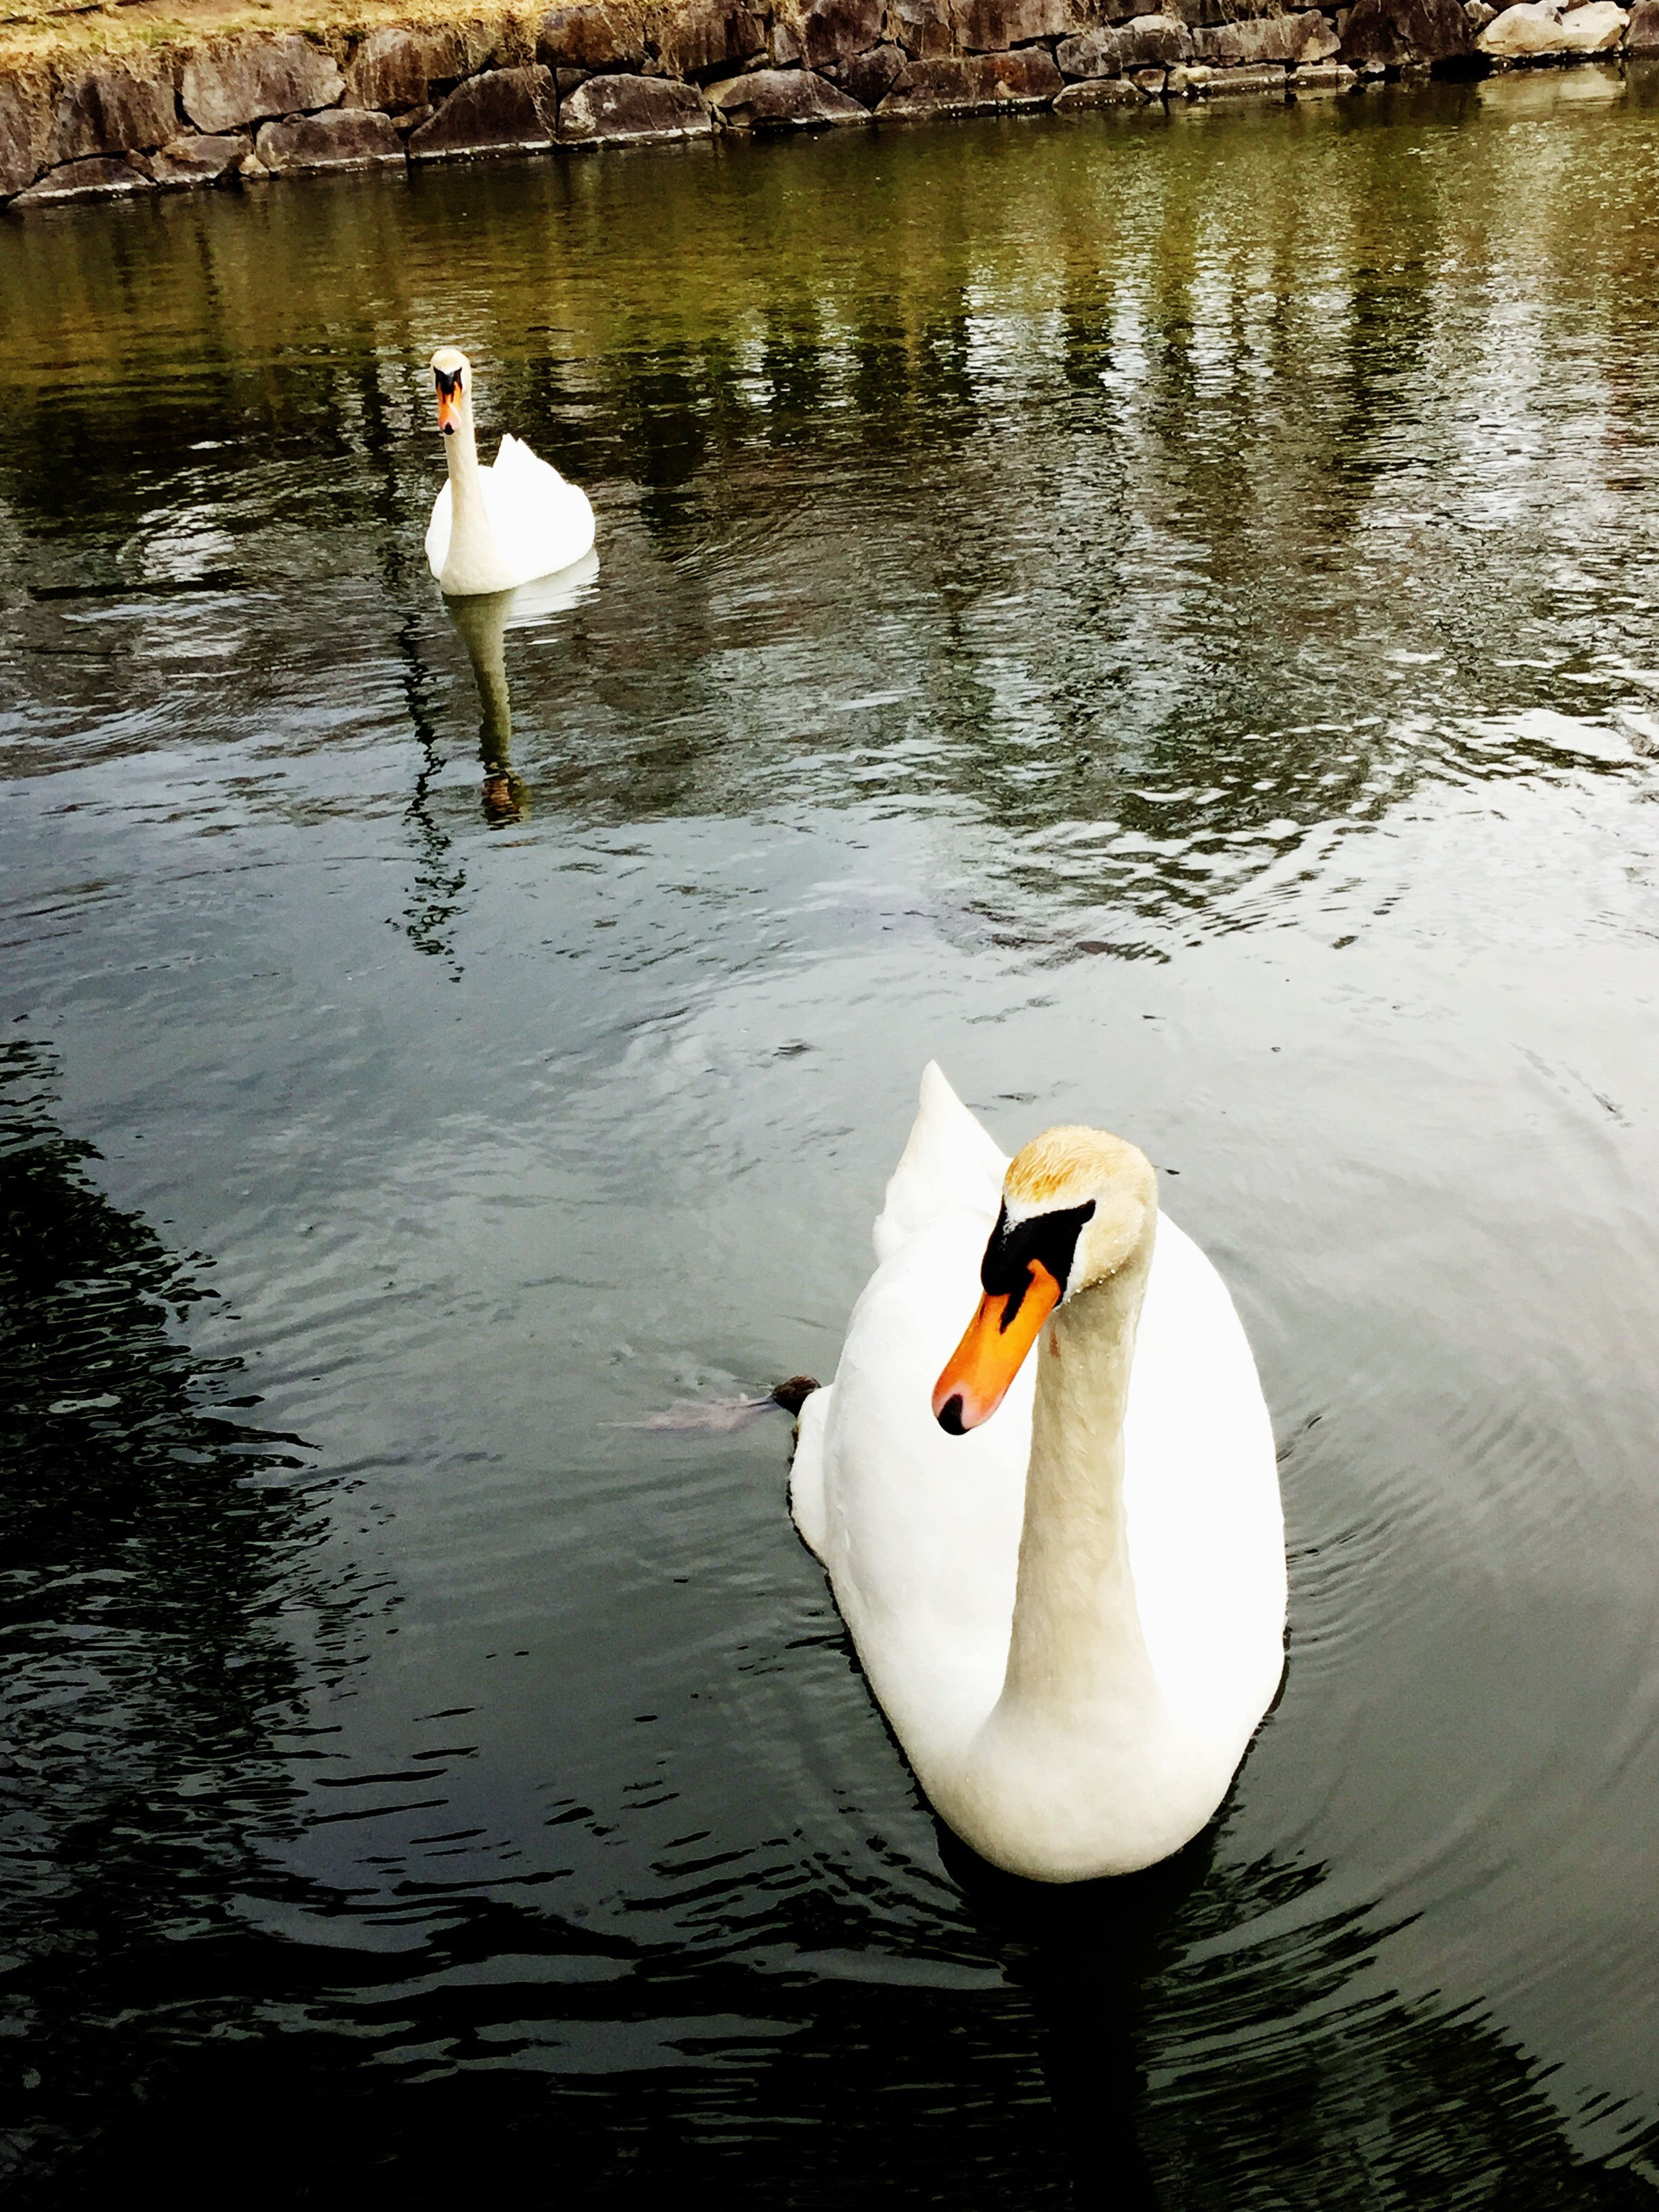 bird, animal themes, water, lake, swan, animals in the wild, wildlife, swimming, reflection, water bird, duck, white color, high angle view, two animals, rippled, floating on water, lakeshore, waterfront, togetherness, nature